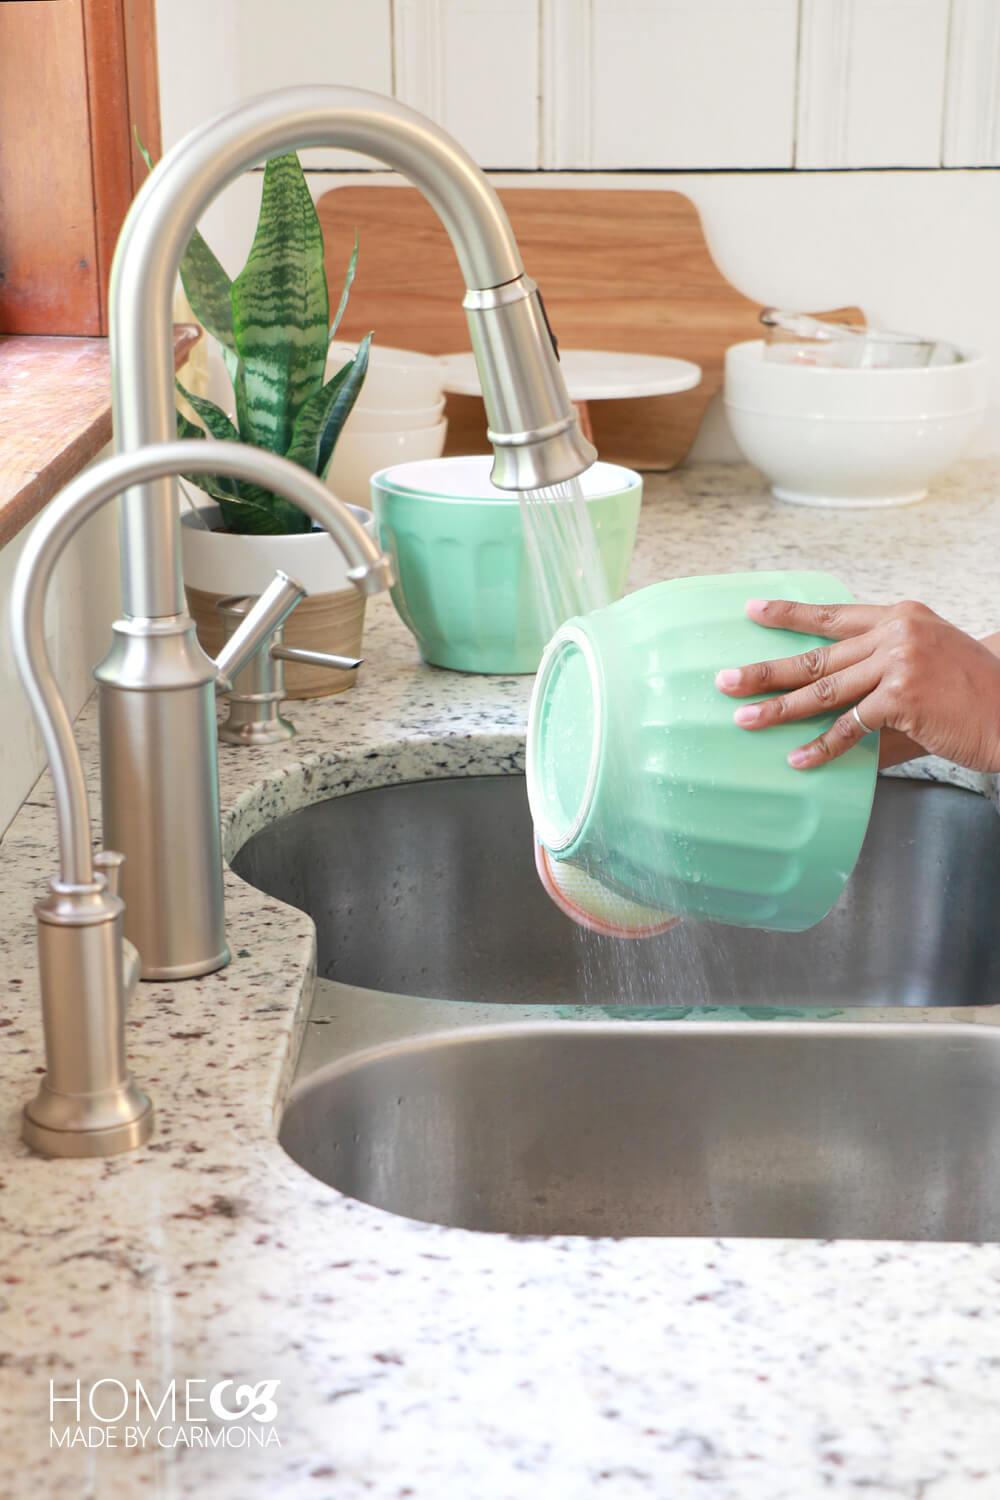 The Perfect Faucet - Moen